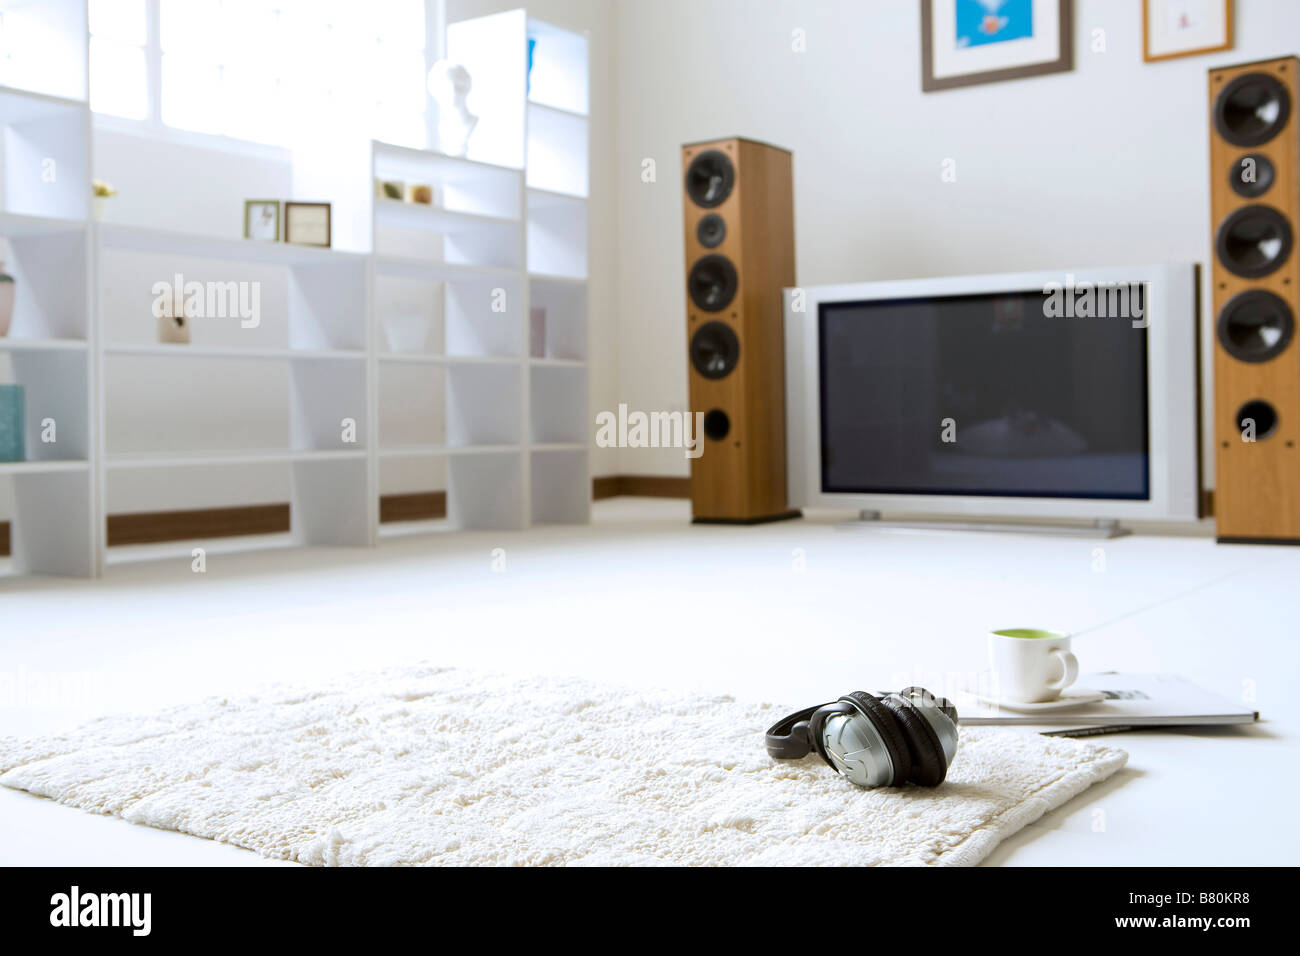 Groung view of a living room with shelf speaker television - Stock Image